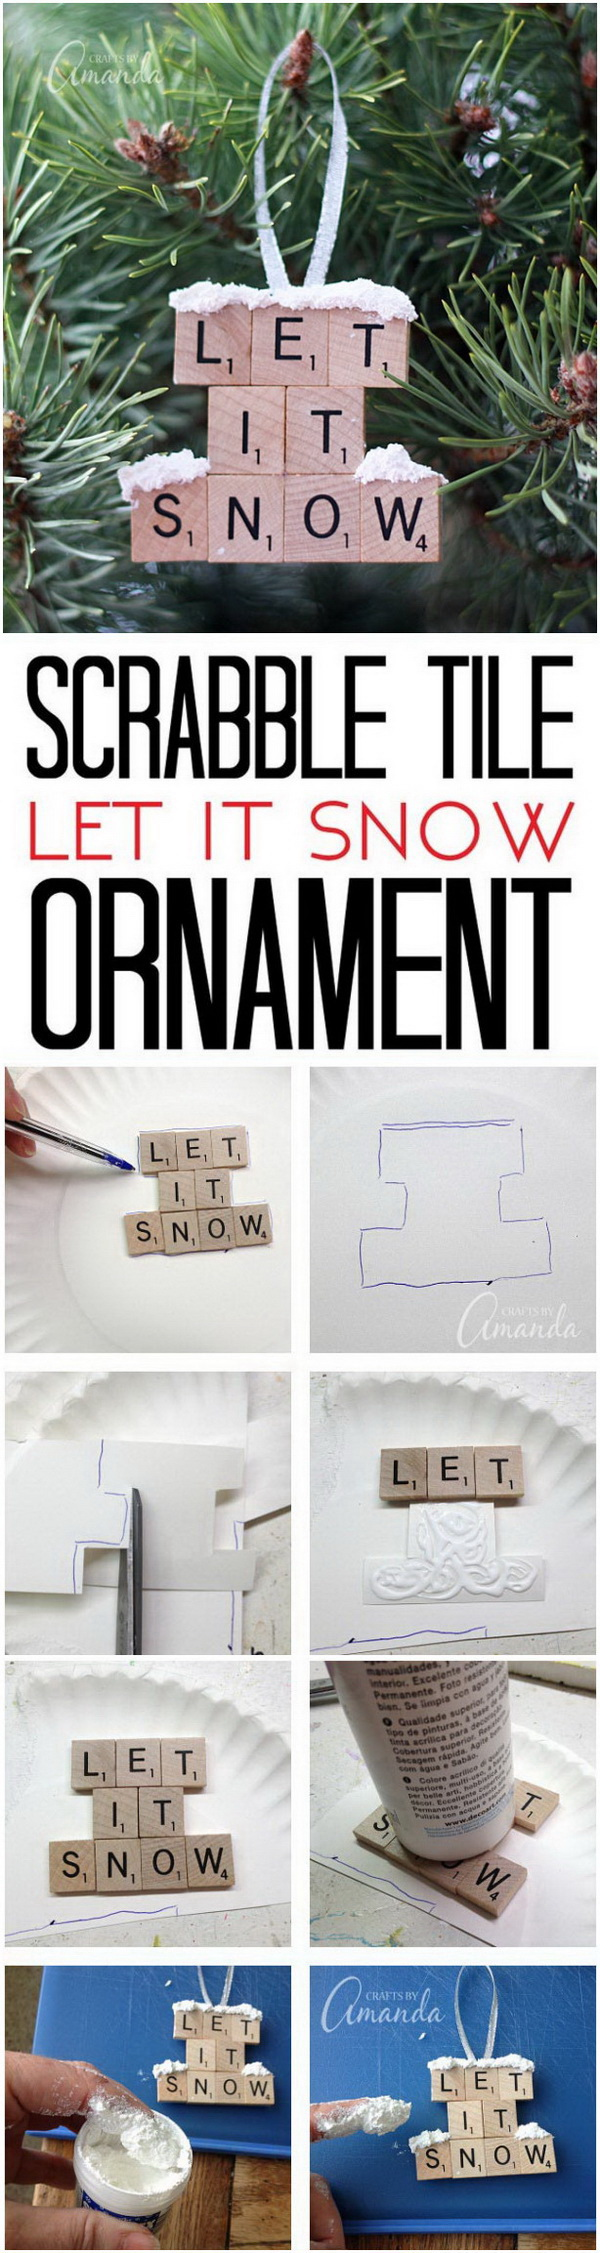 Let It Snow: Scrabble Tile Ornaments.